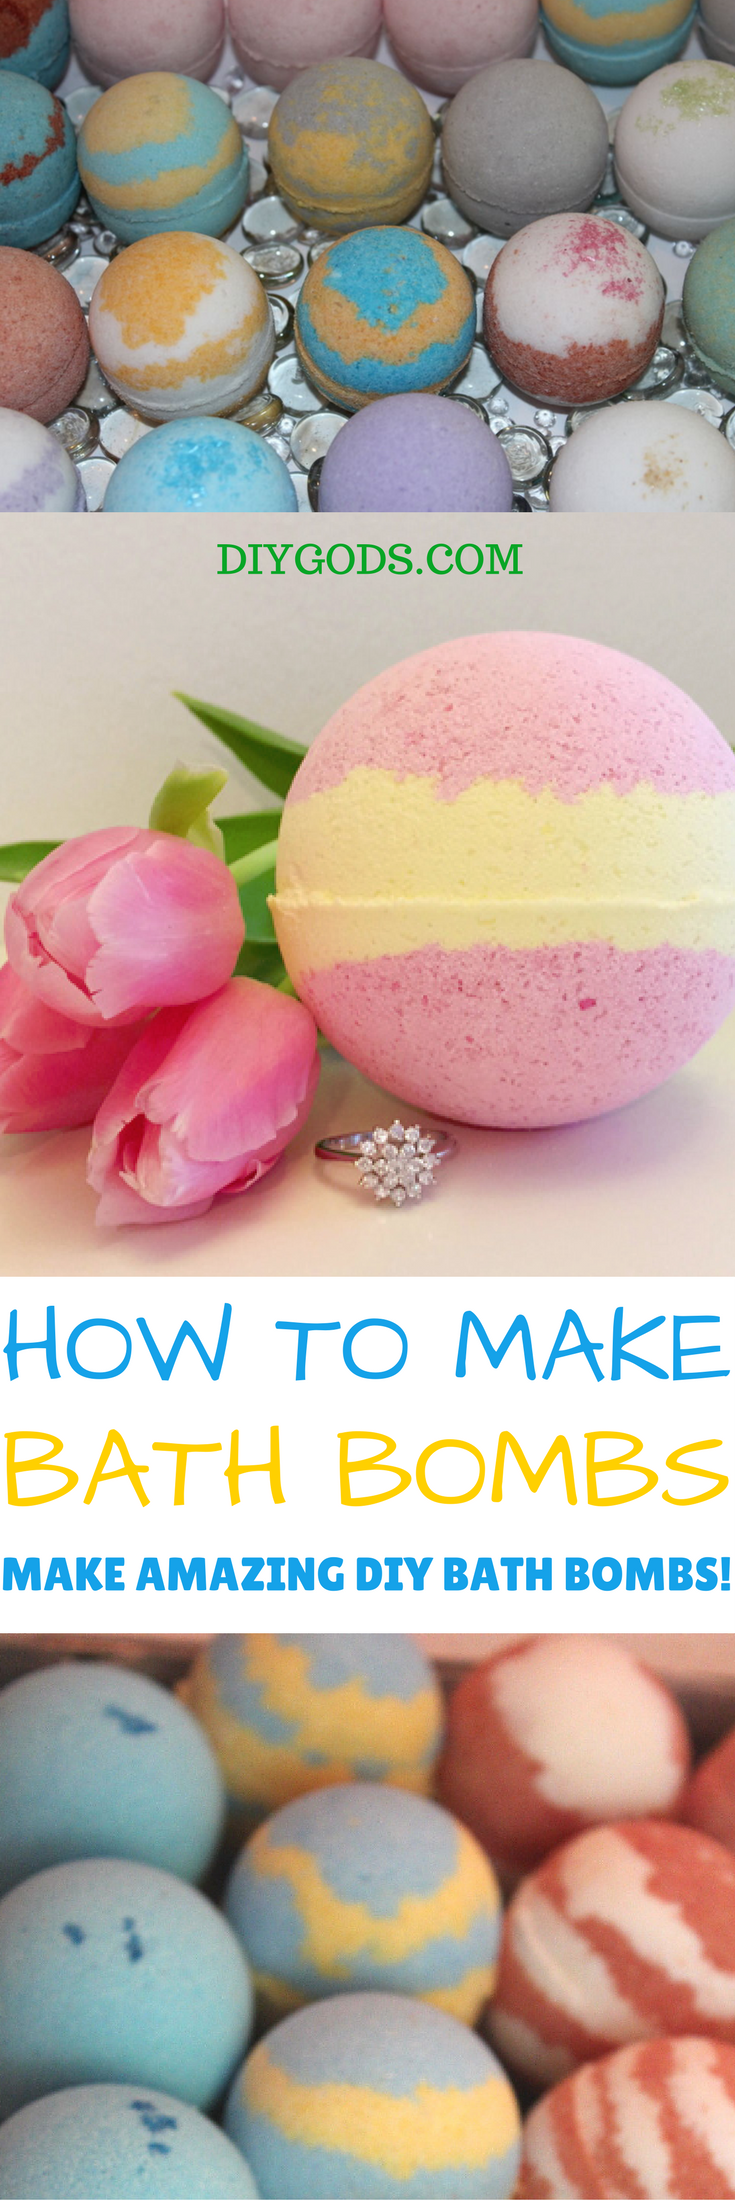 HOW TO MAKE DIY BATH BOMBS